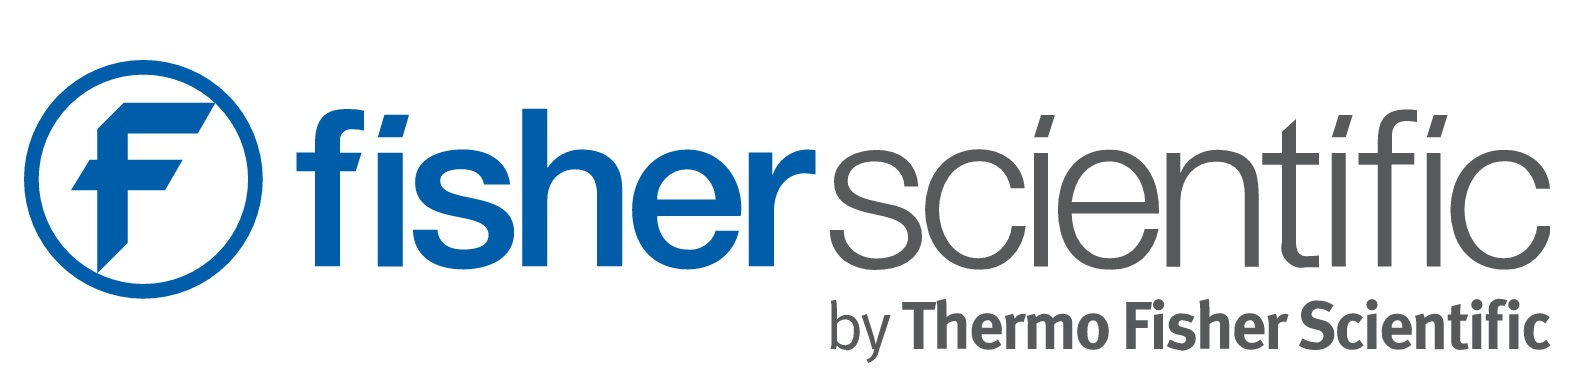 Fisher Scientific 2017 logo.jpg